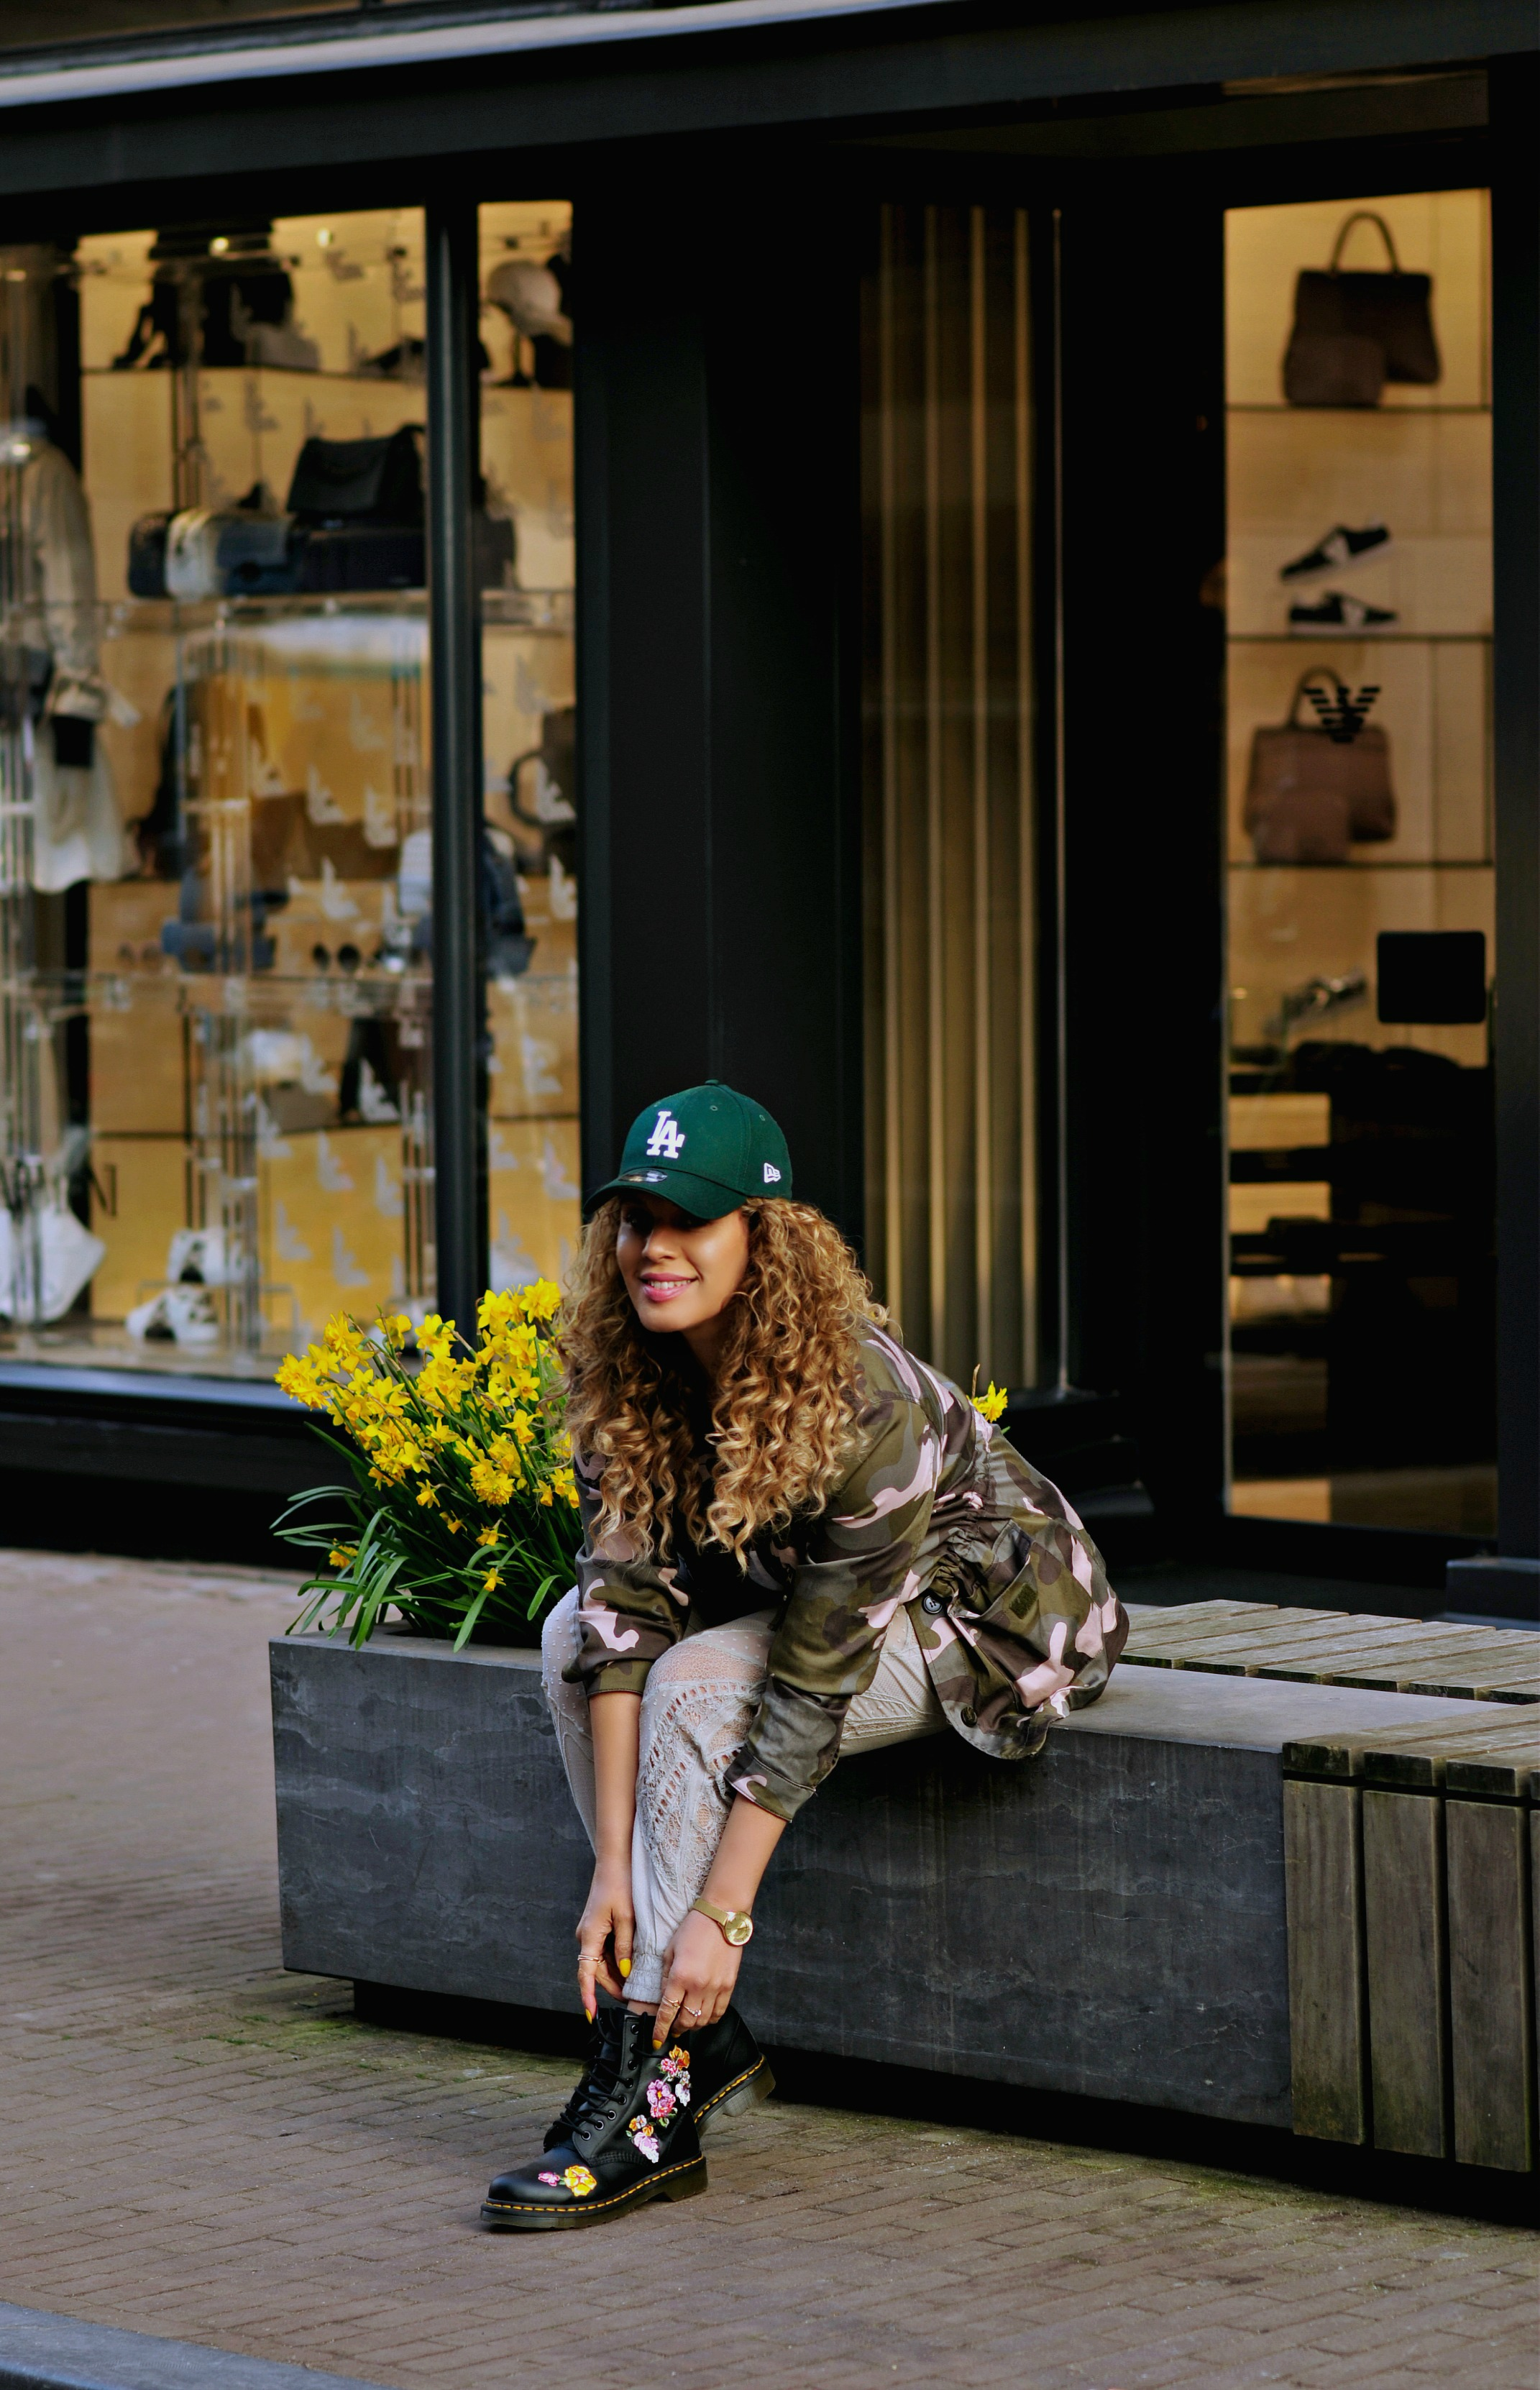 15 ways To Play tourist In Your Hometown, Tamara Chloé, Floral Dr Martens, Amsterdam